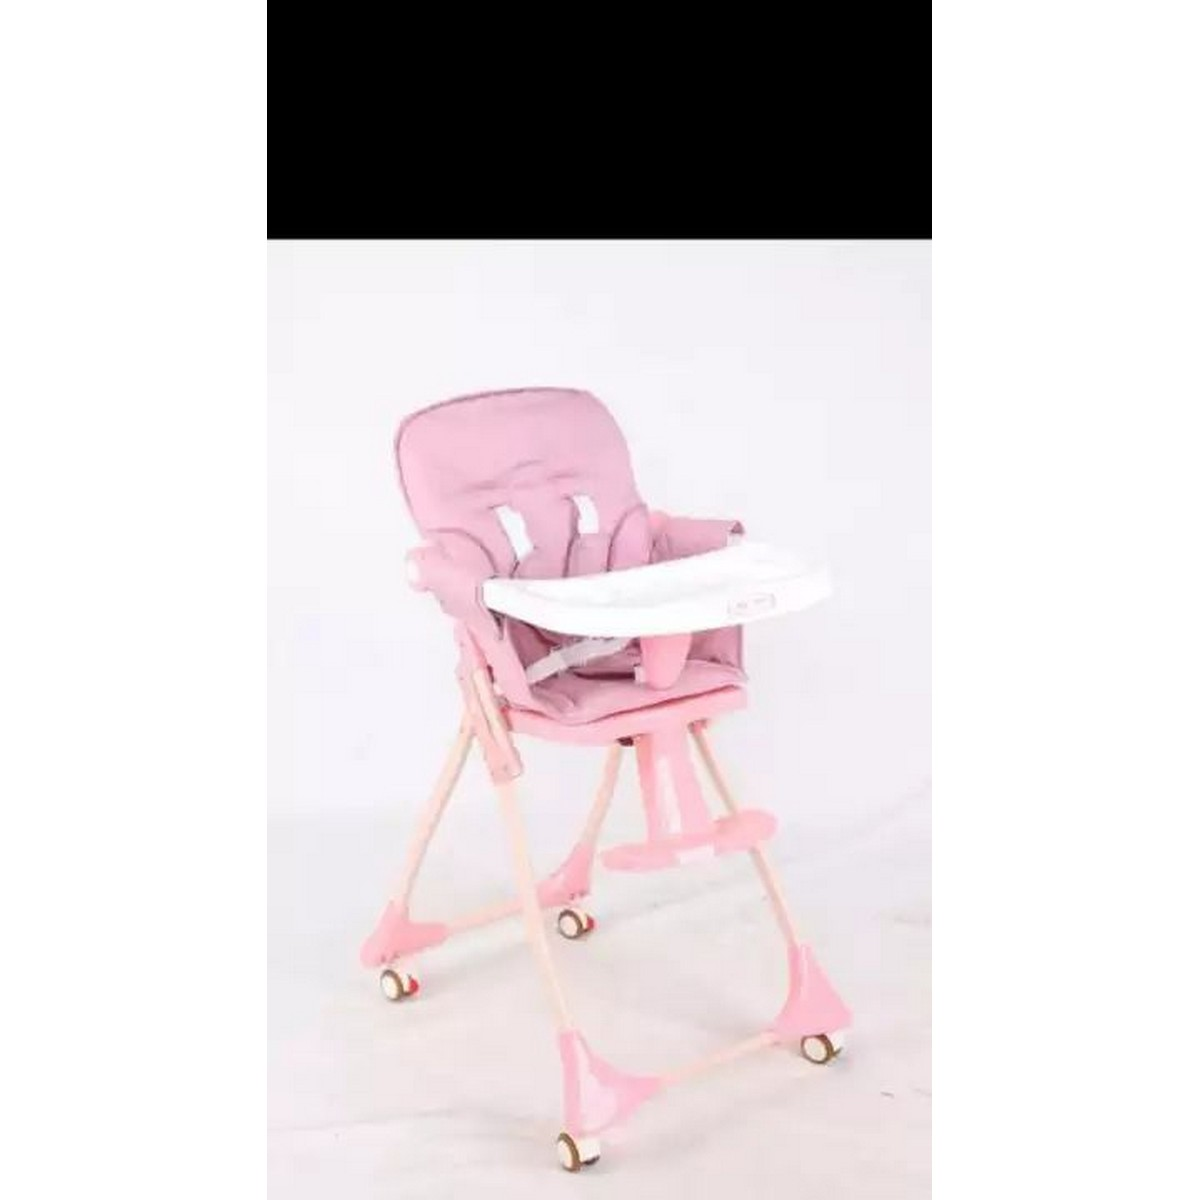 Baby High Chair With Tray,Baby High Table,Baby High Chair,Baby Table Chair,Comfortable for Kids,Chair And Table